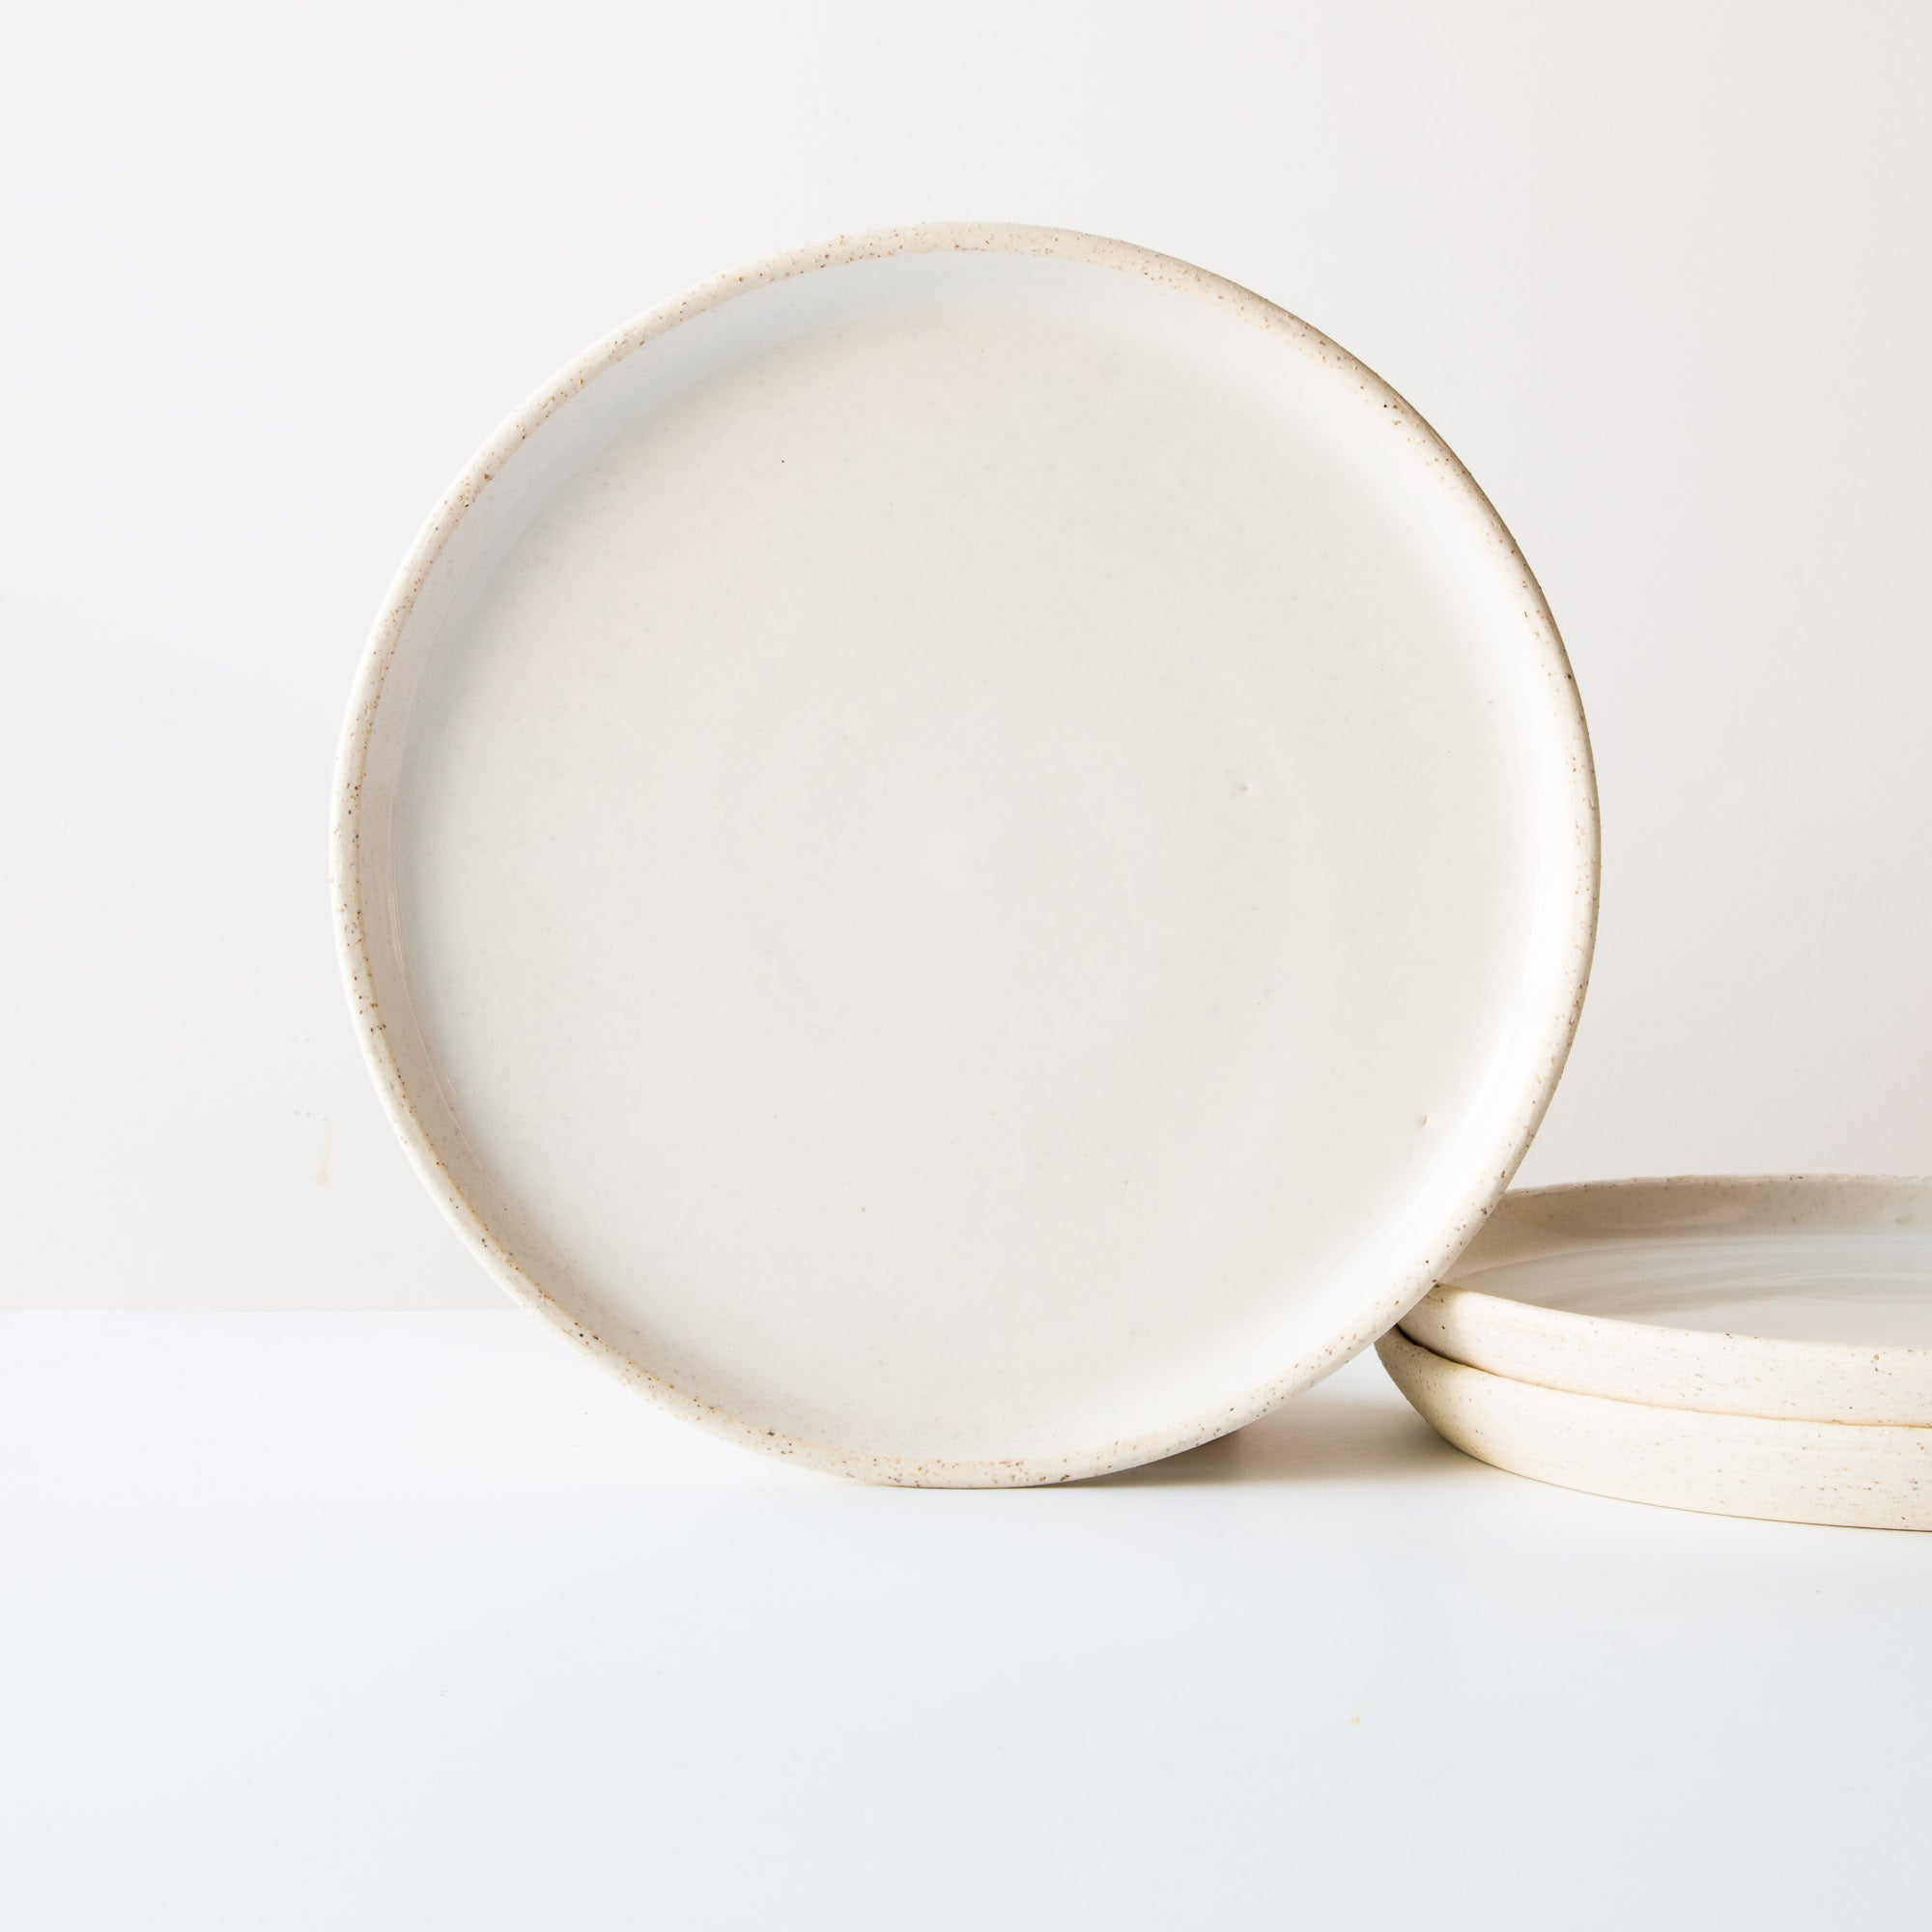 Oatmeal Clay - Soft White Glaze - Large Ceramic Dinner Plates - Handmade in Quebec ... : dinner plates canada - pezcame.com